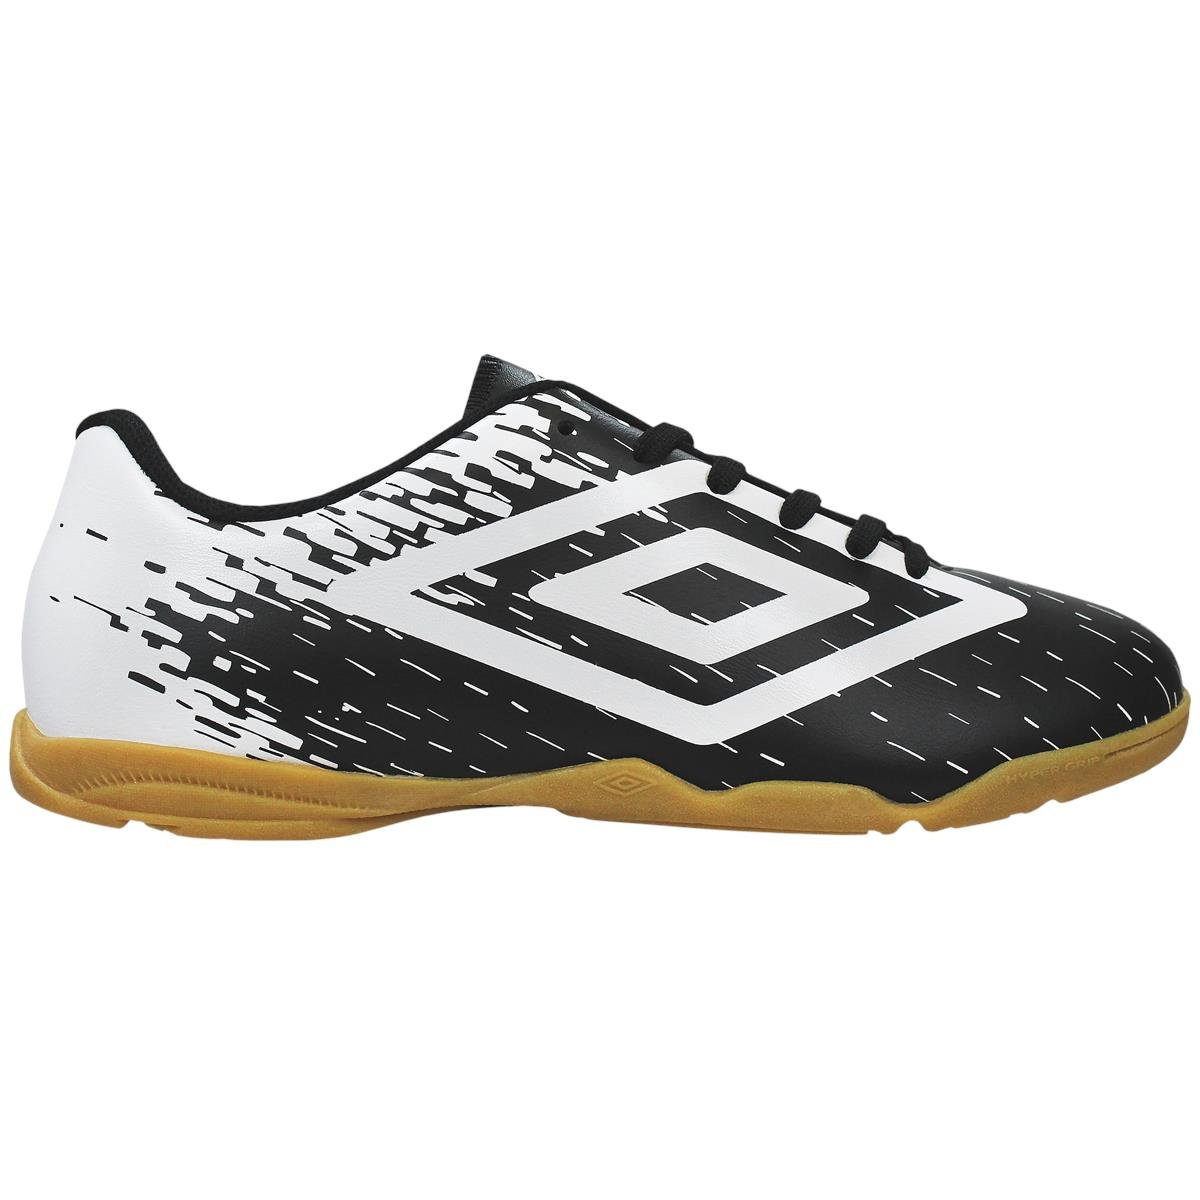 7251cdd931 CHUTEIRA FUTSAL UMBRO ACID INDOOR IN